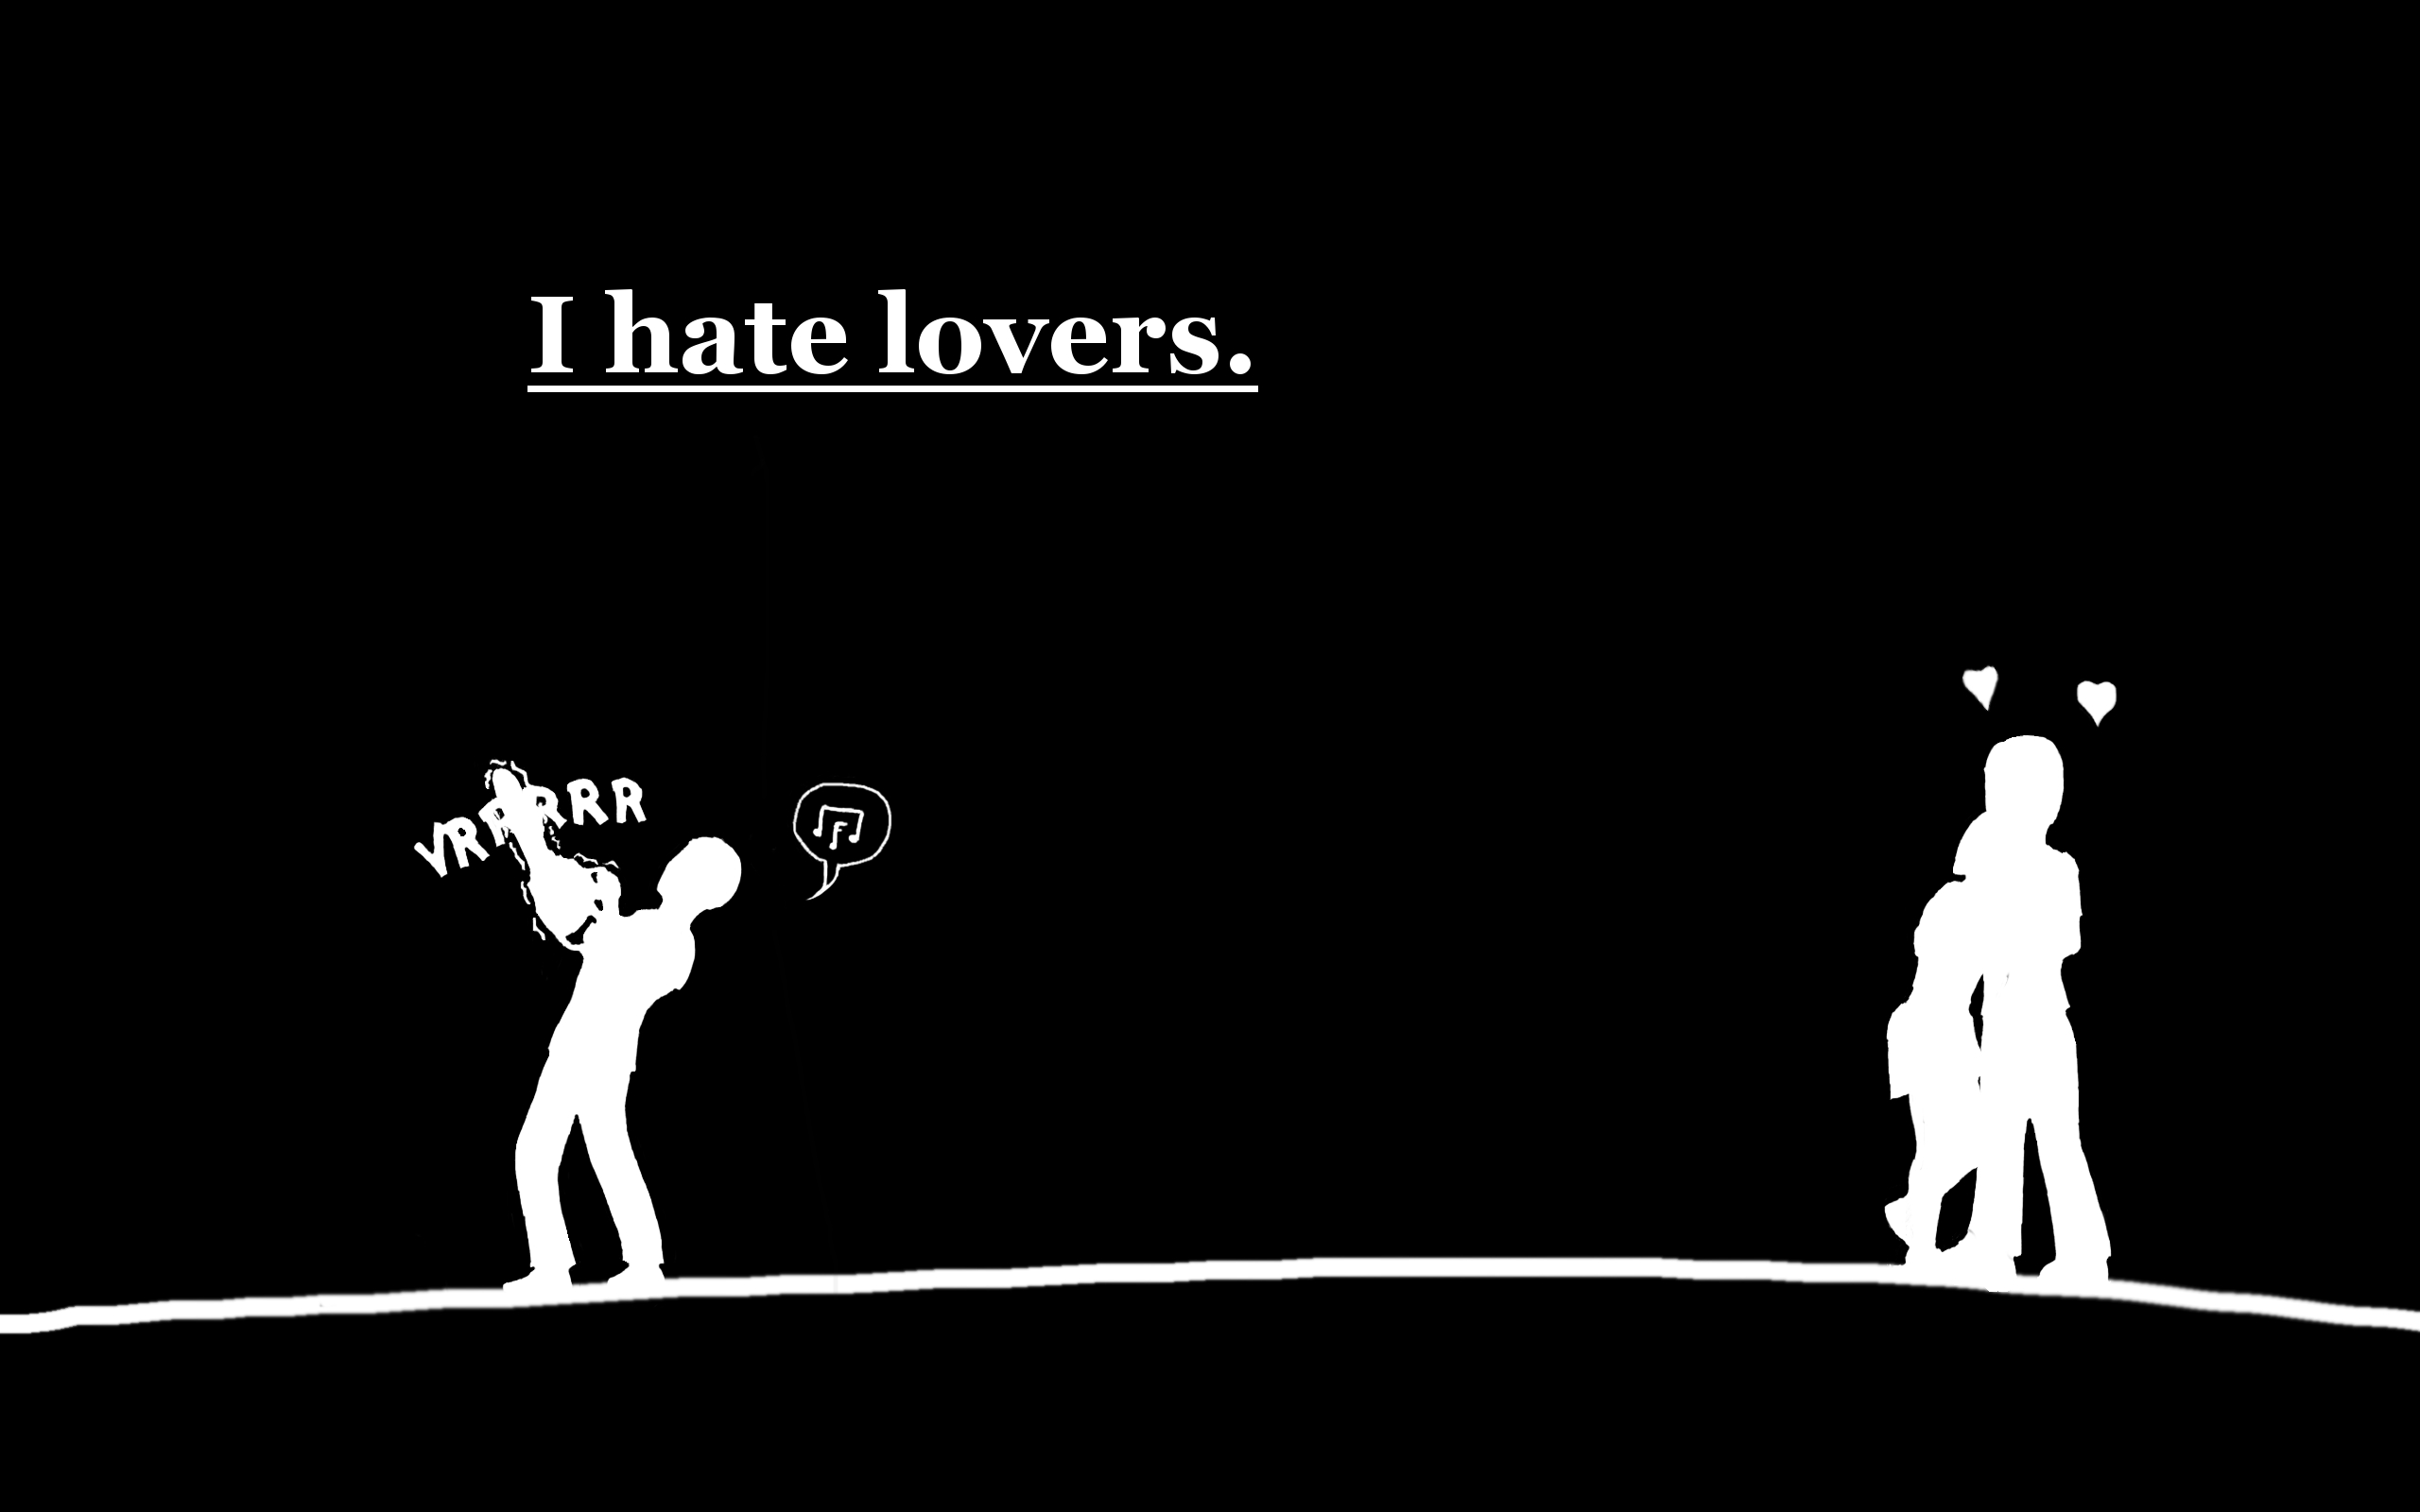 I hate lovers Full HD Wallpaper and Background Image ...